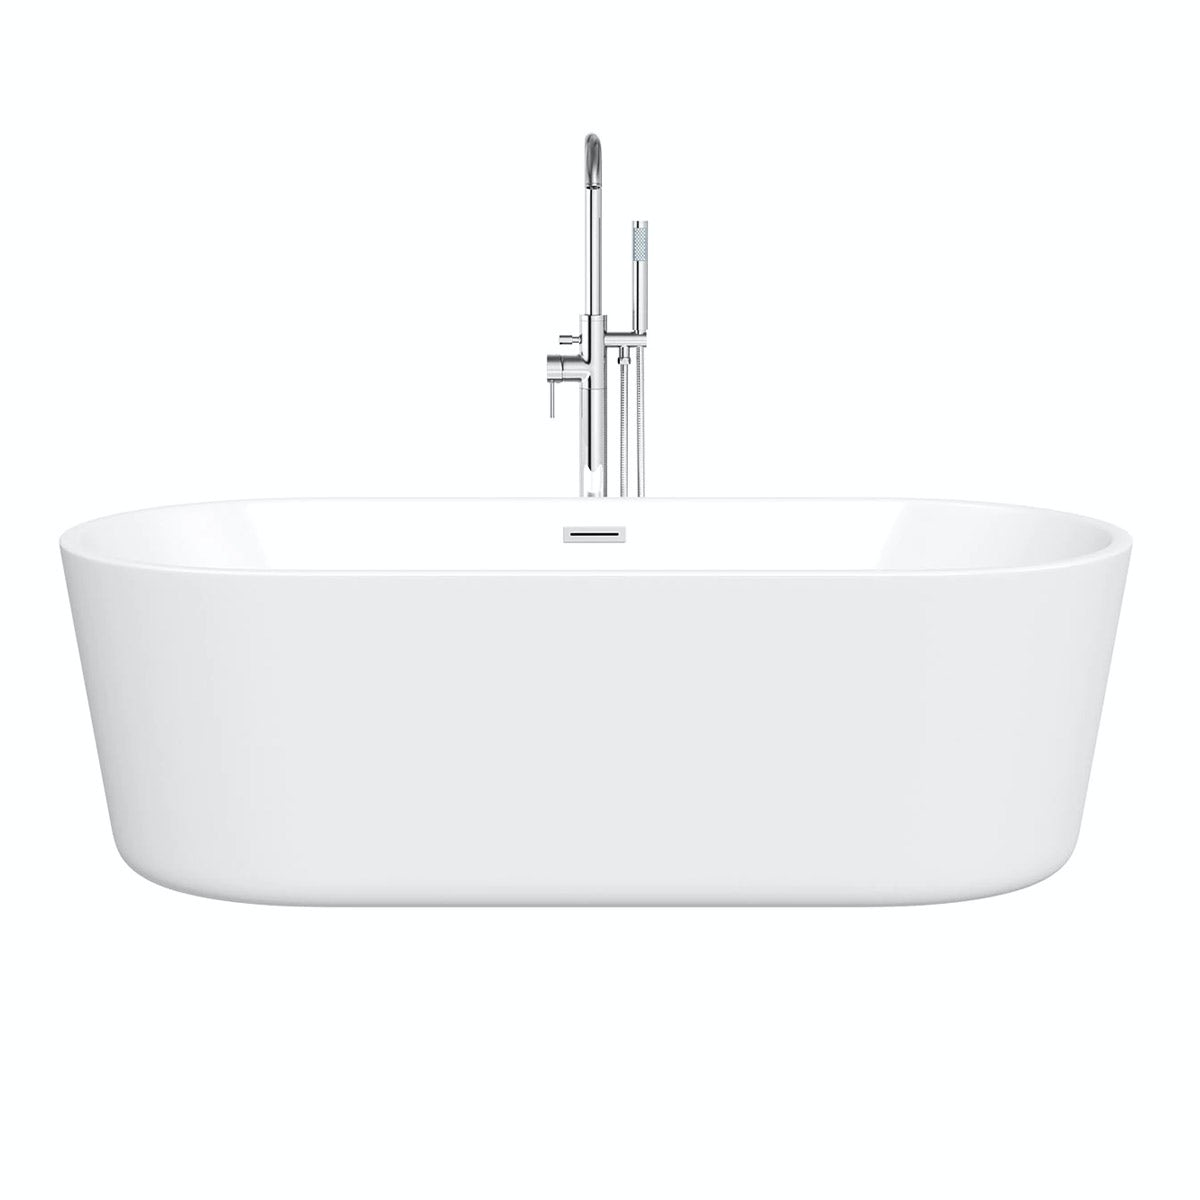 Mode Tate freestanding bath offer pack